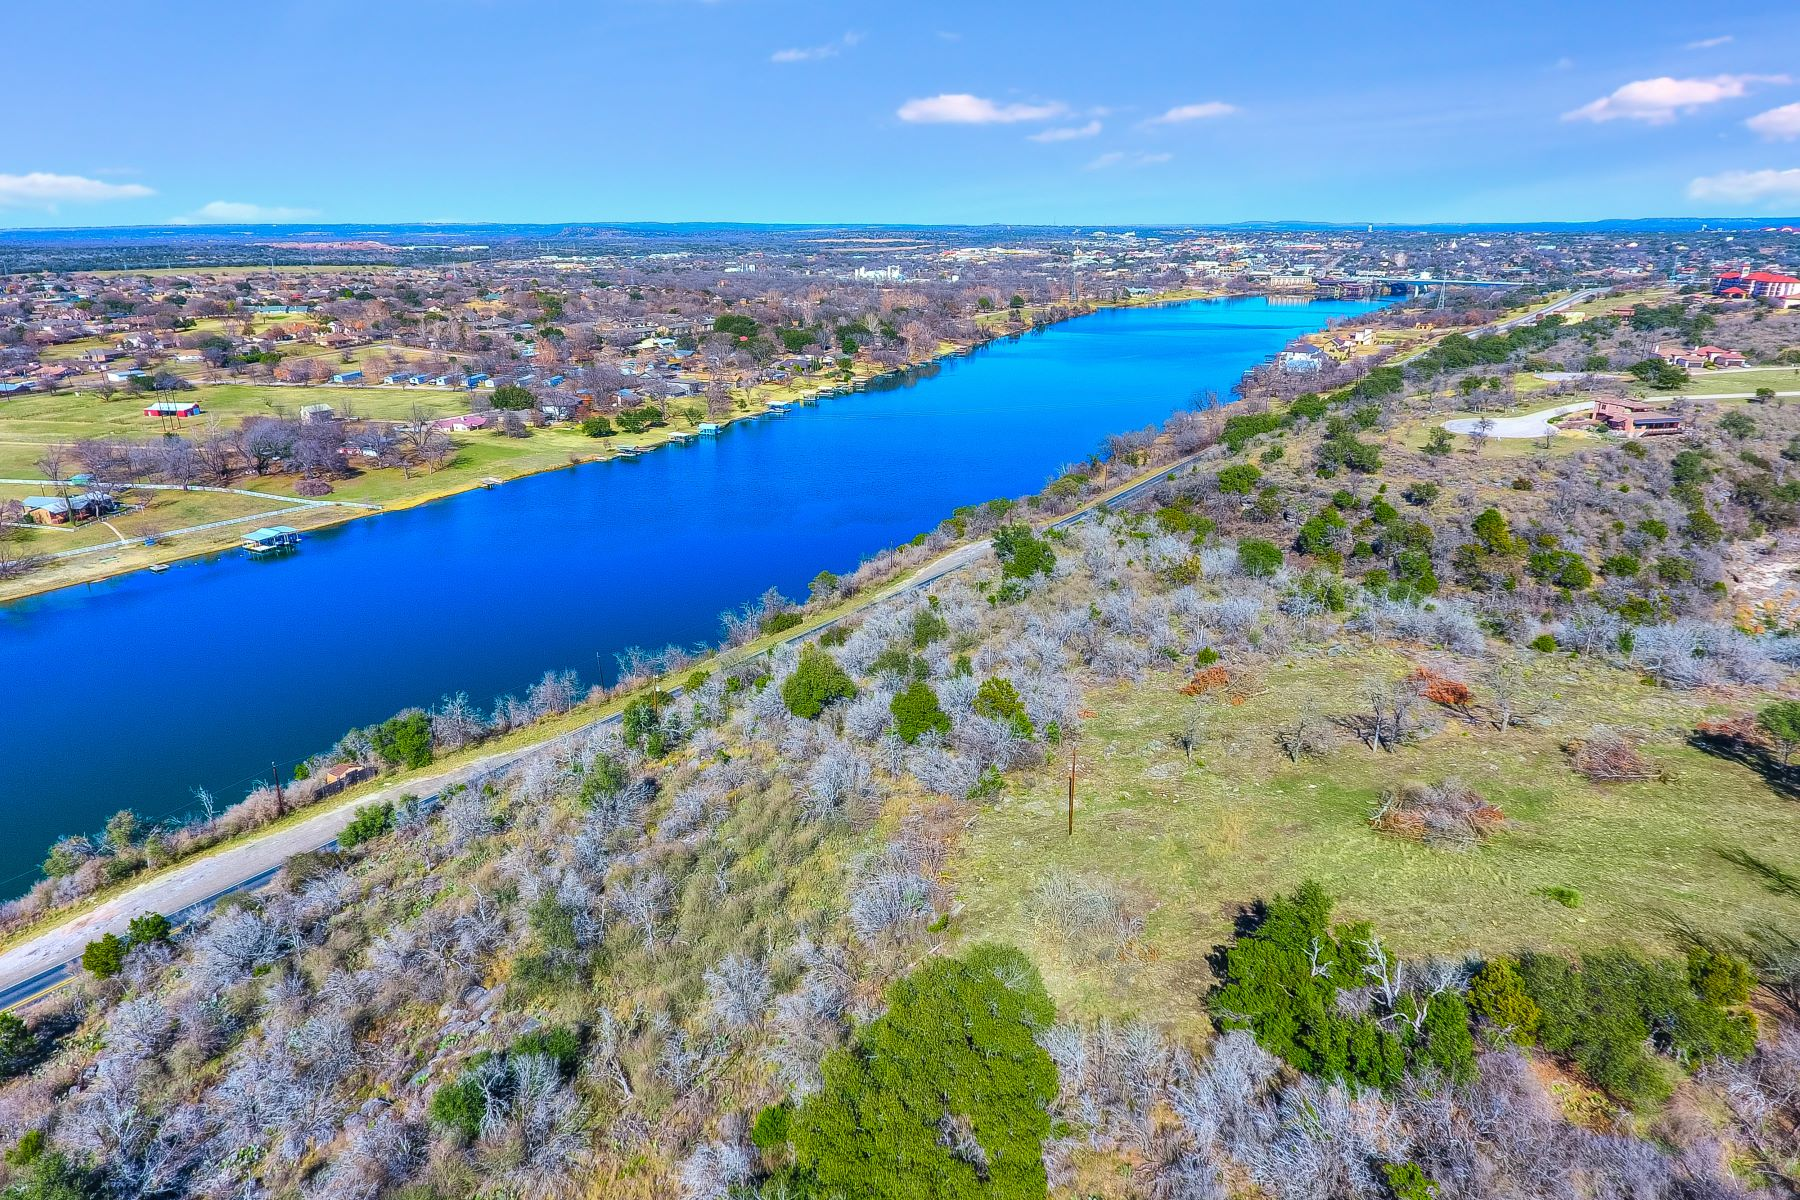 Land for Sale at Waterfront Lot on Lake Marble Falls 00 FM 2147 on Lake Marble Falls Marble Falls, Texas 78654 United States